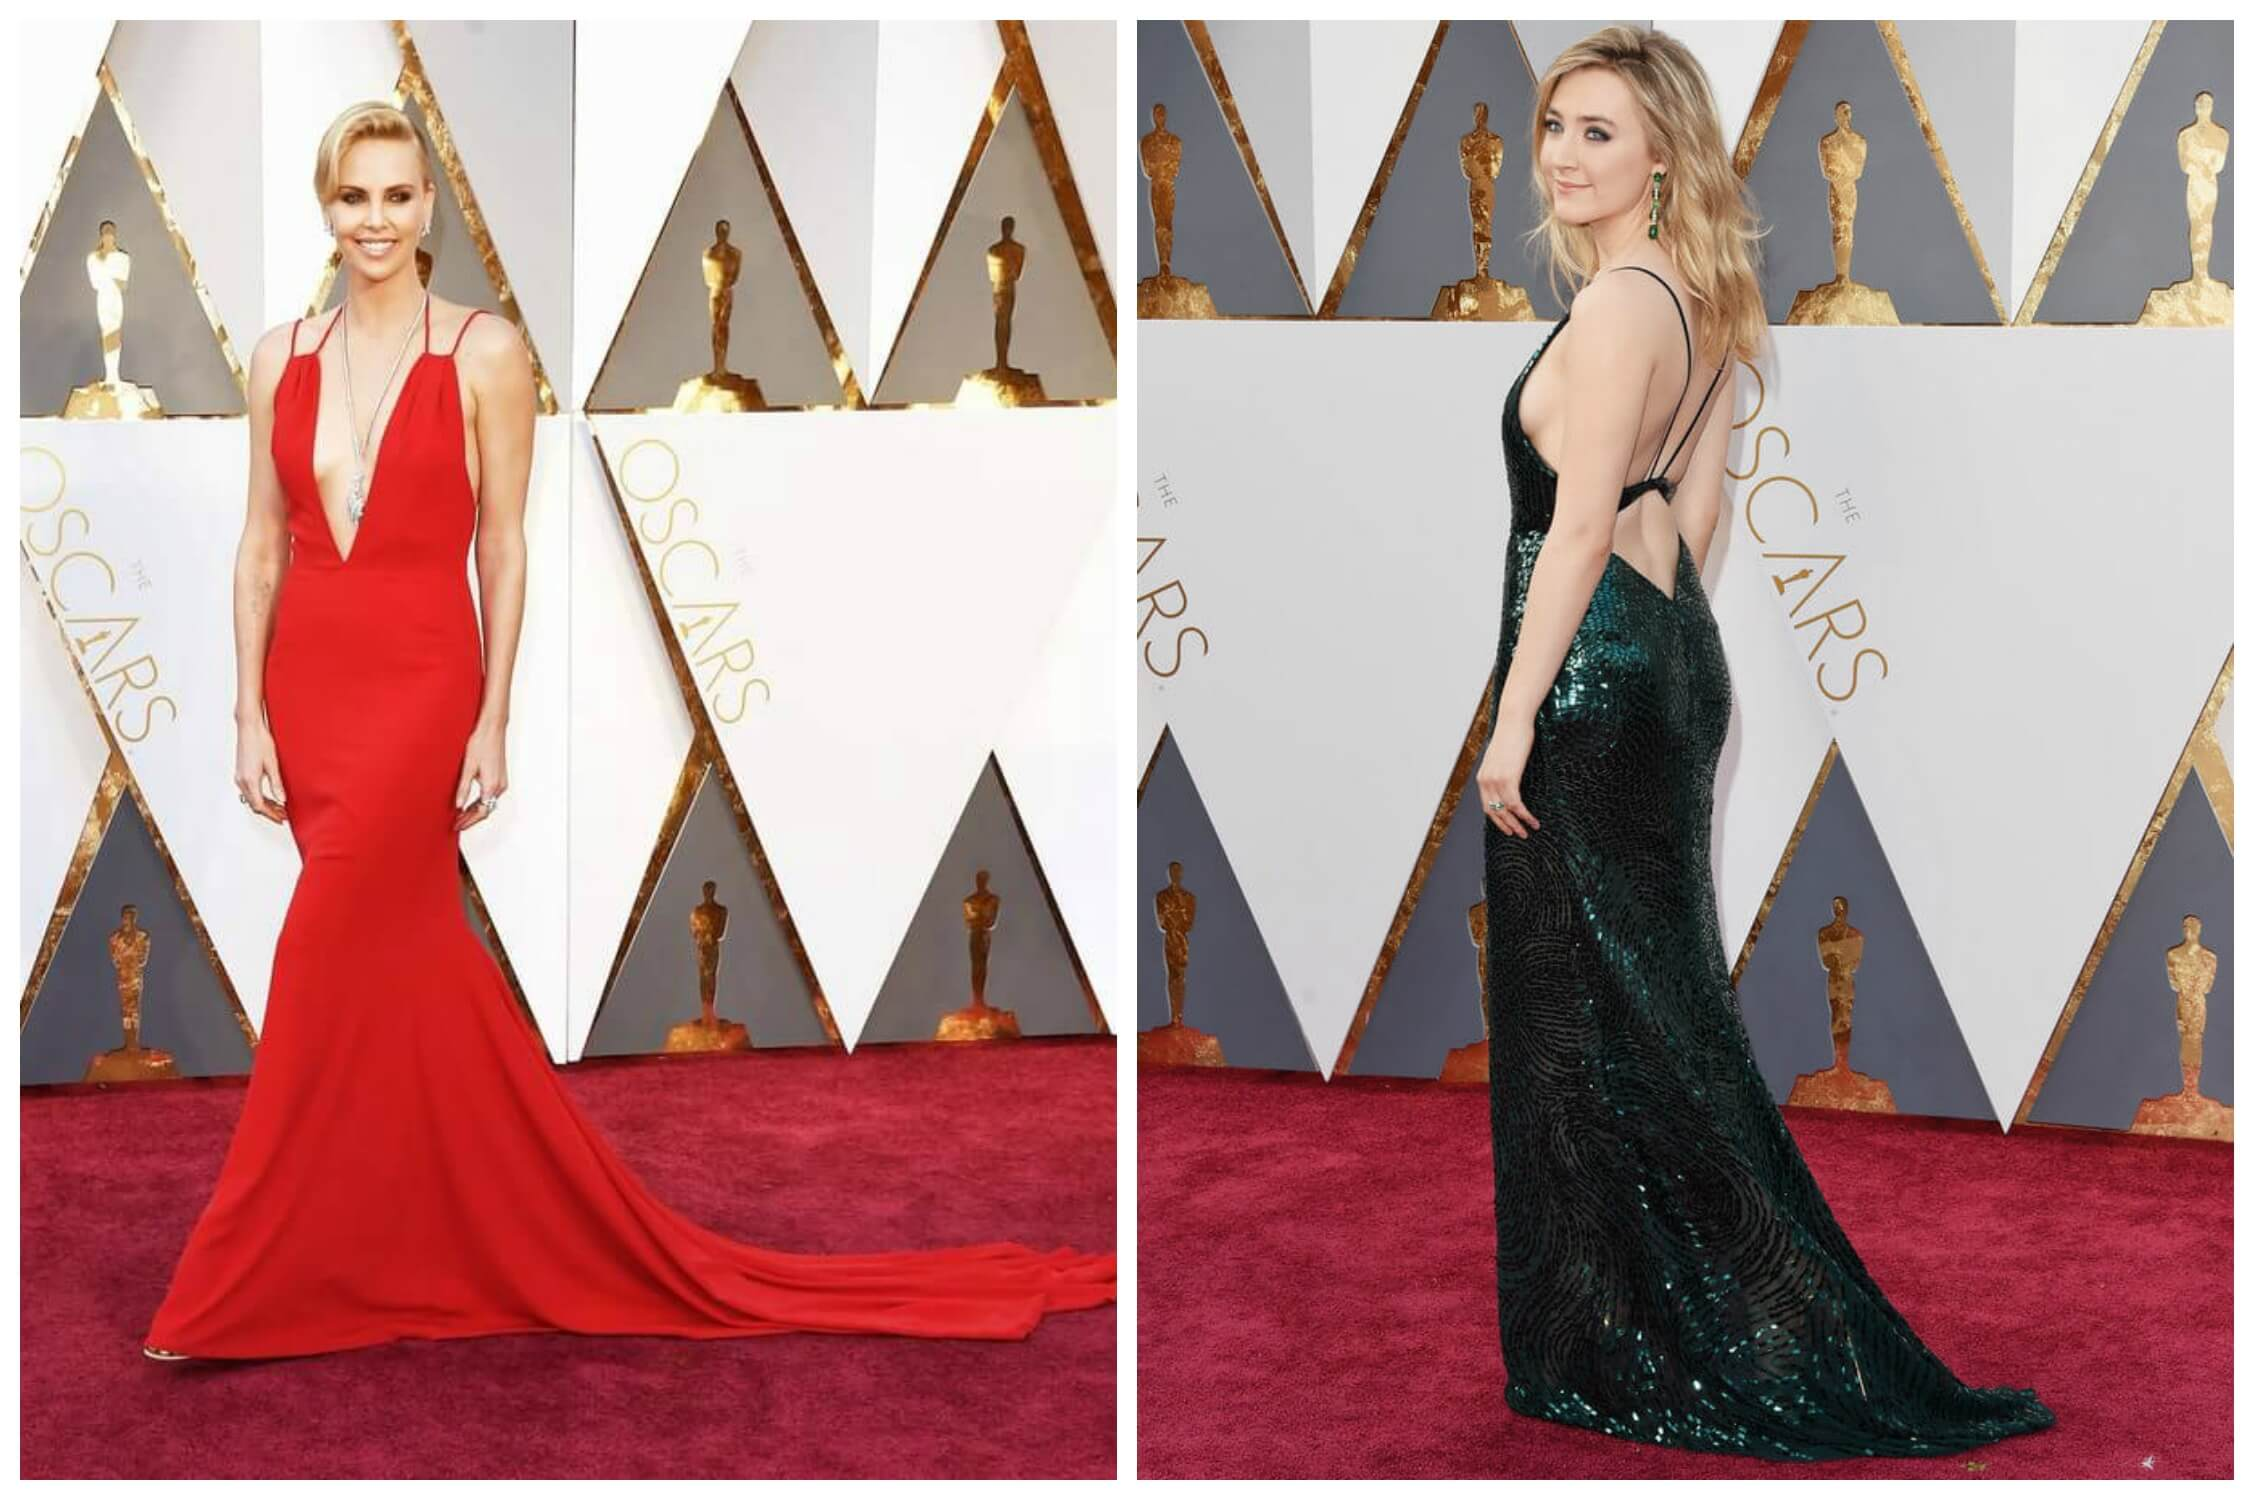 Charlize Theron at the 2016 Oscars in Dior Haute Couture with shoulder cutouts via US Magazine; Saoirse Ronan at the 2016 Oscars in Calvin Klein with a back cutout via PopSugar